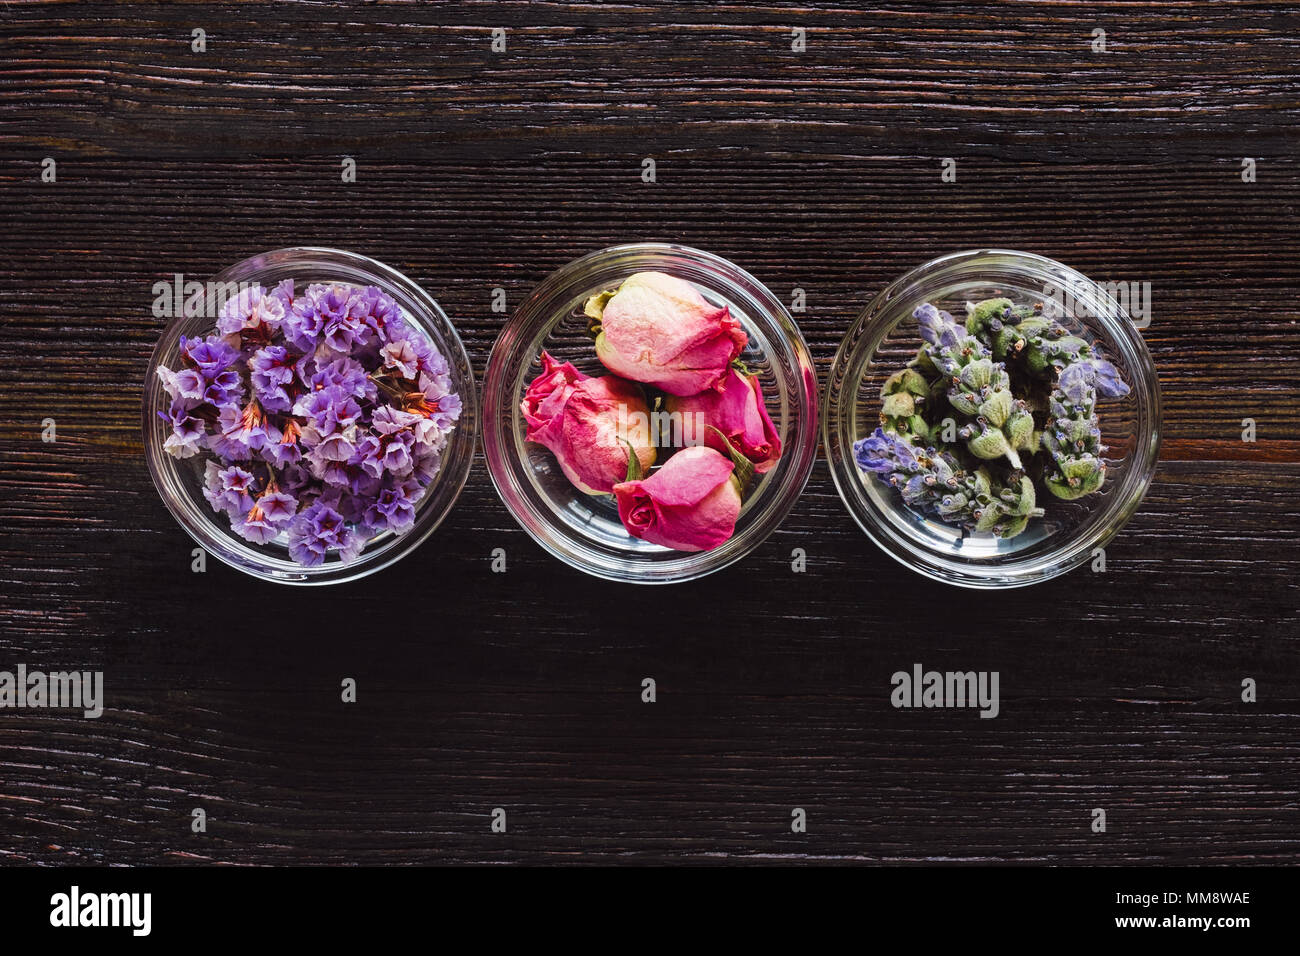 Bowls of Dried Lavender, Rose, and Sea Lavender Aligned and Centered on Dark Table with Space for Copy - Stock Image